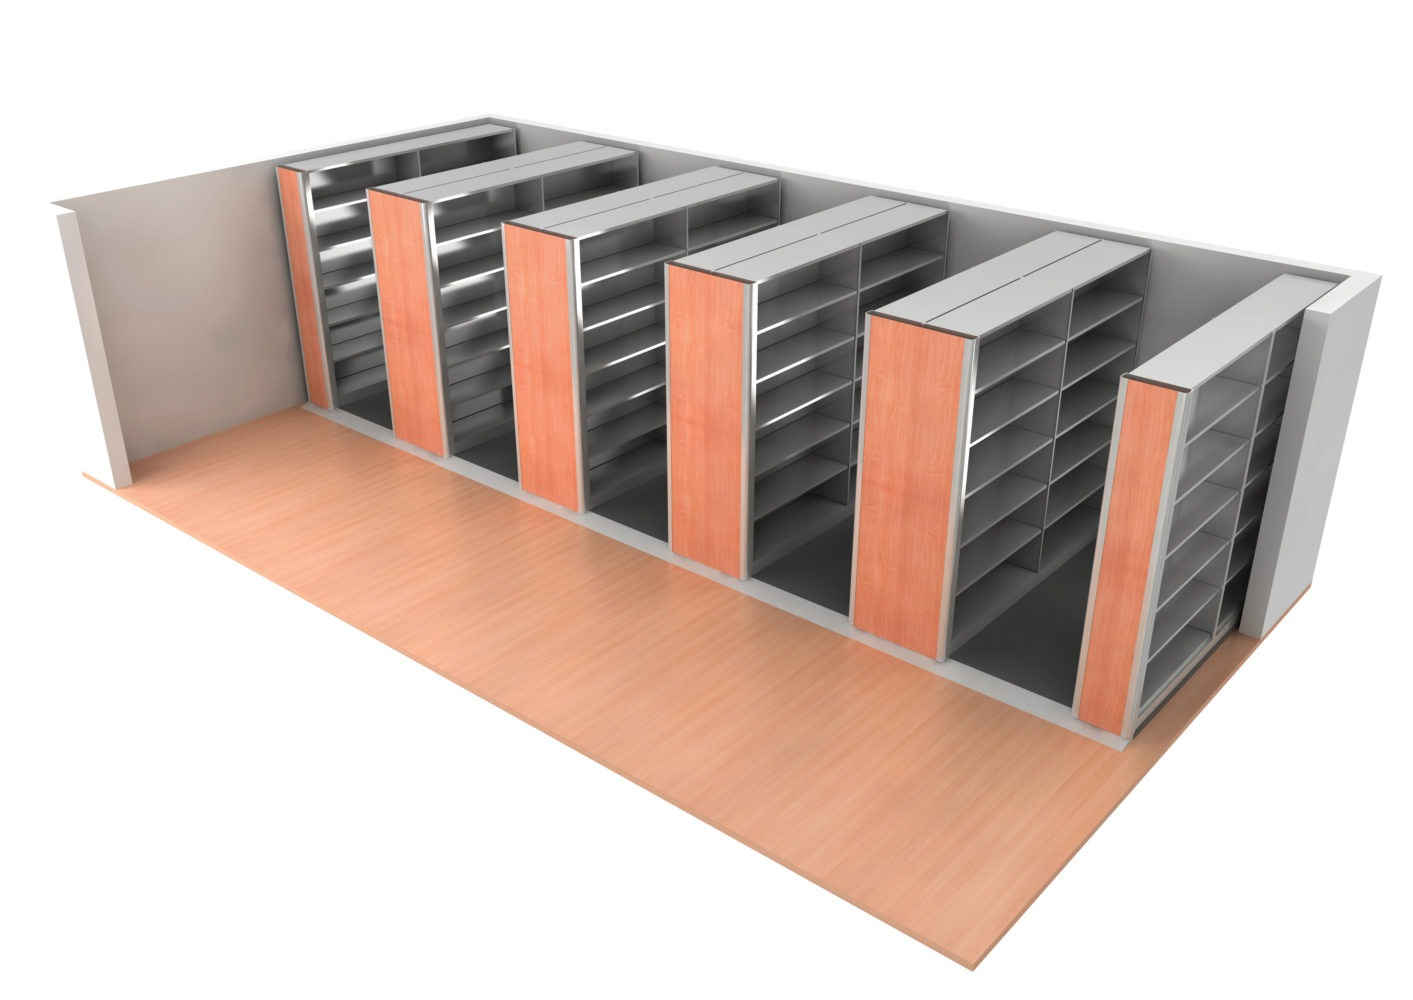 Compact Storage is intrinsically more secure than open static shelving.